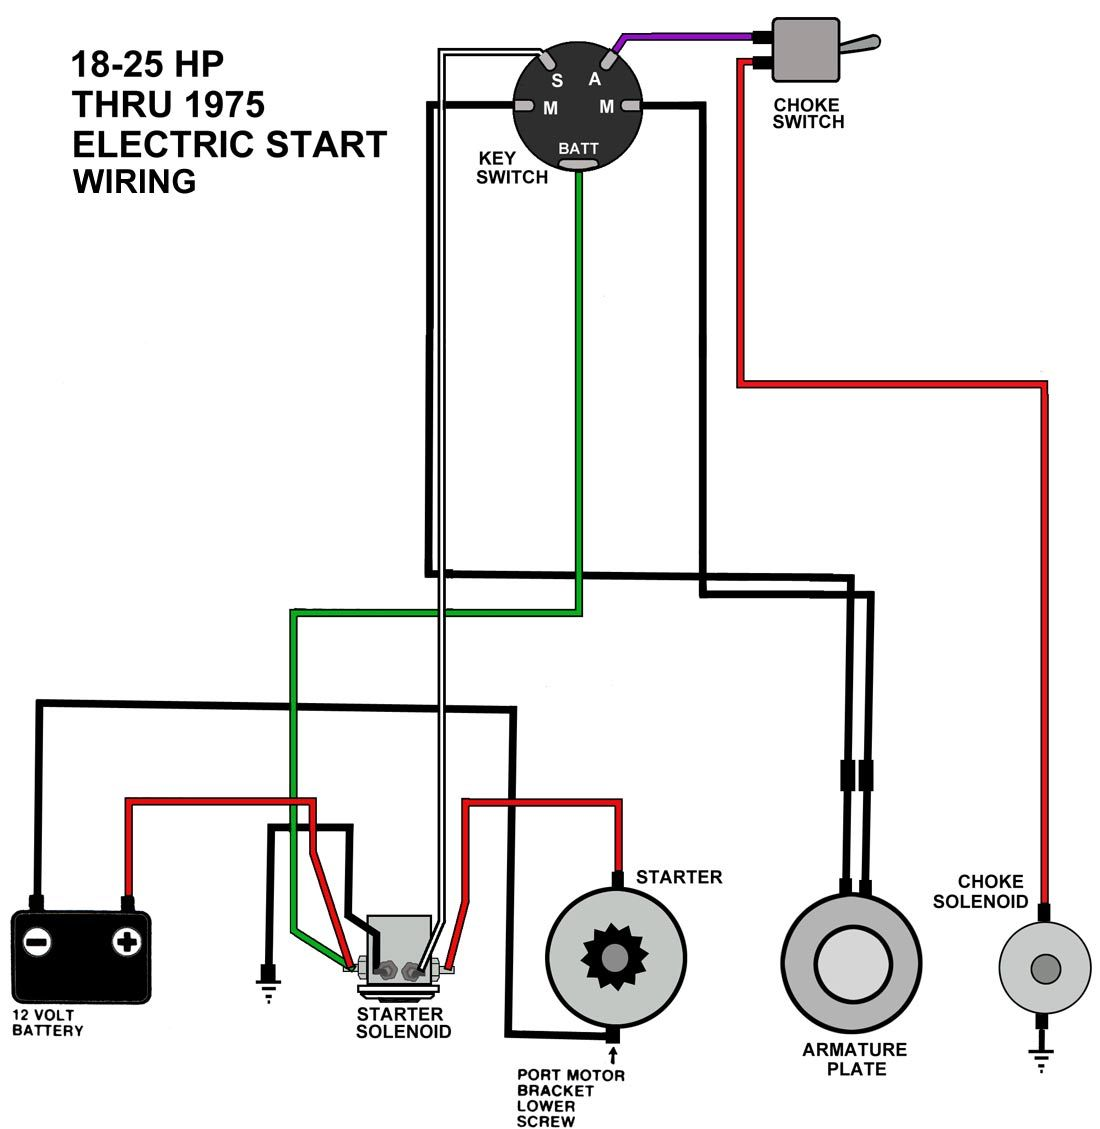 [SCHEMATICS_49CH]  Yanmar Solenoid Wiring Diagram Wiring in 2020 | Boat wiring, Trailer wiring  diagram, Kill switch | Wiring Diagram Schematic With Switch |  | Pinterest